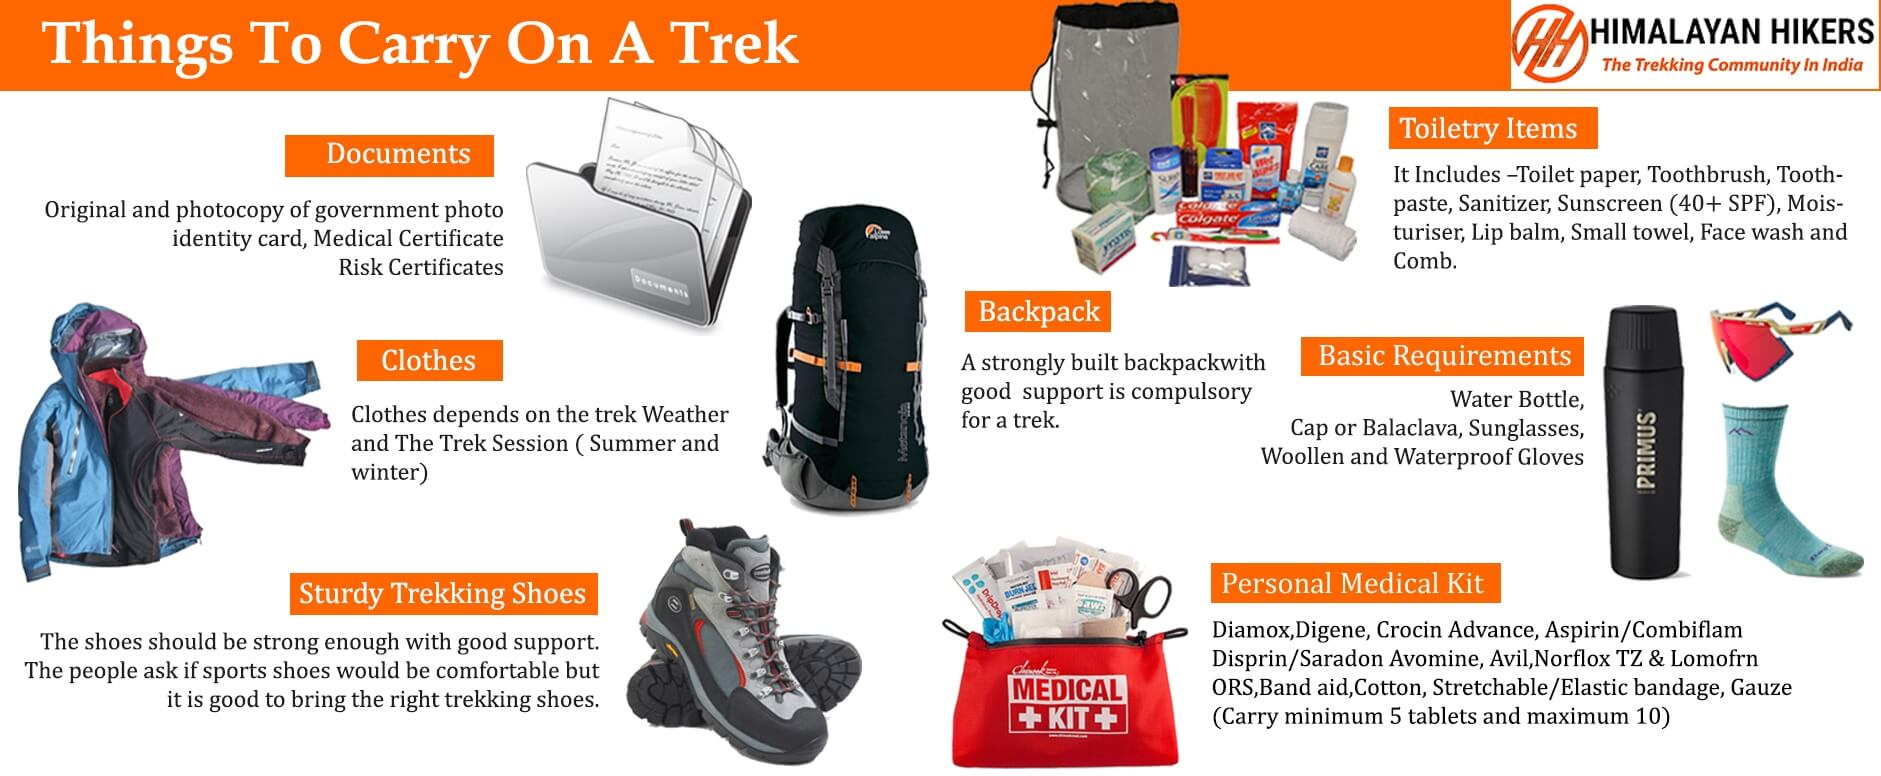 Things To Carry On A Trek